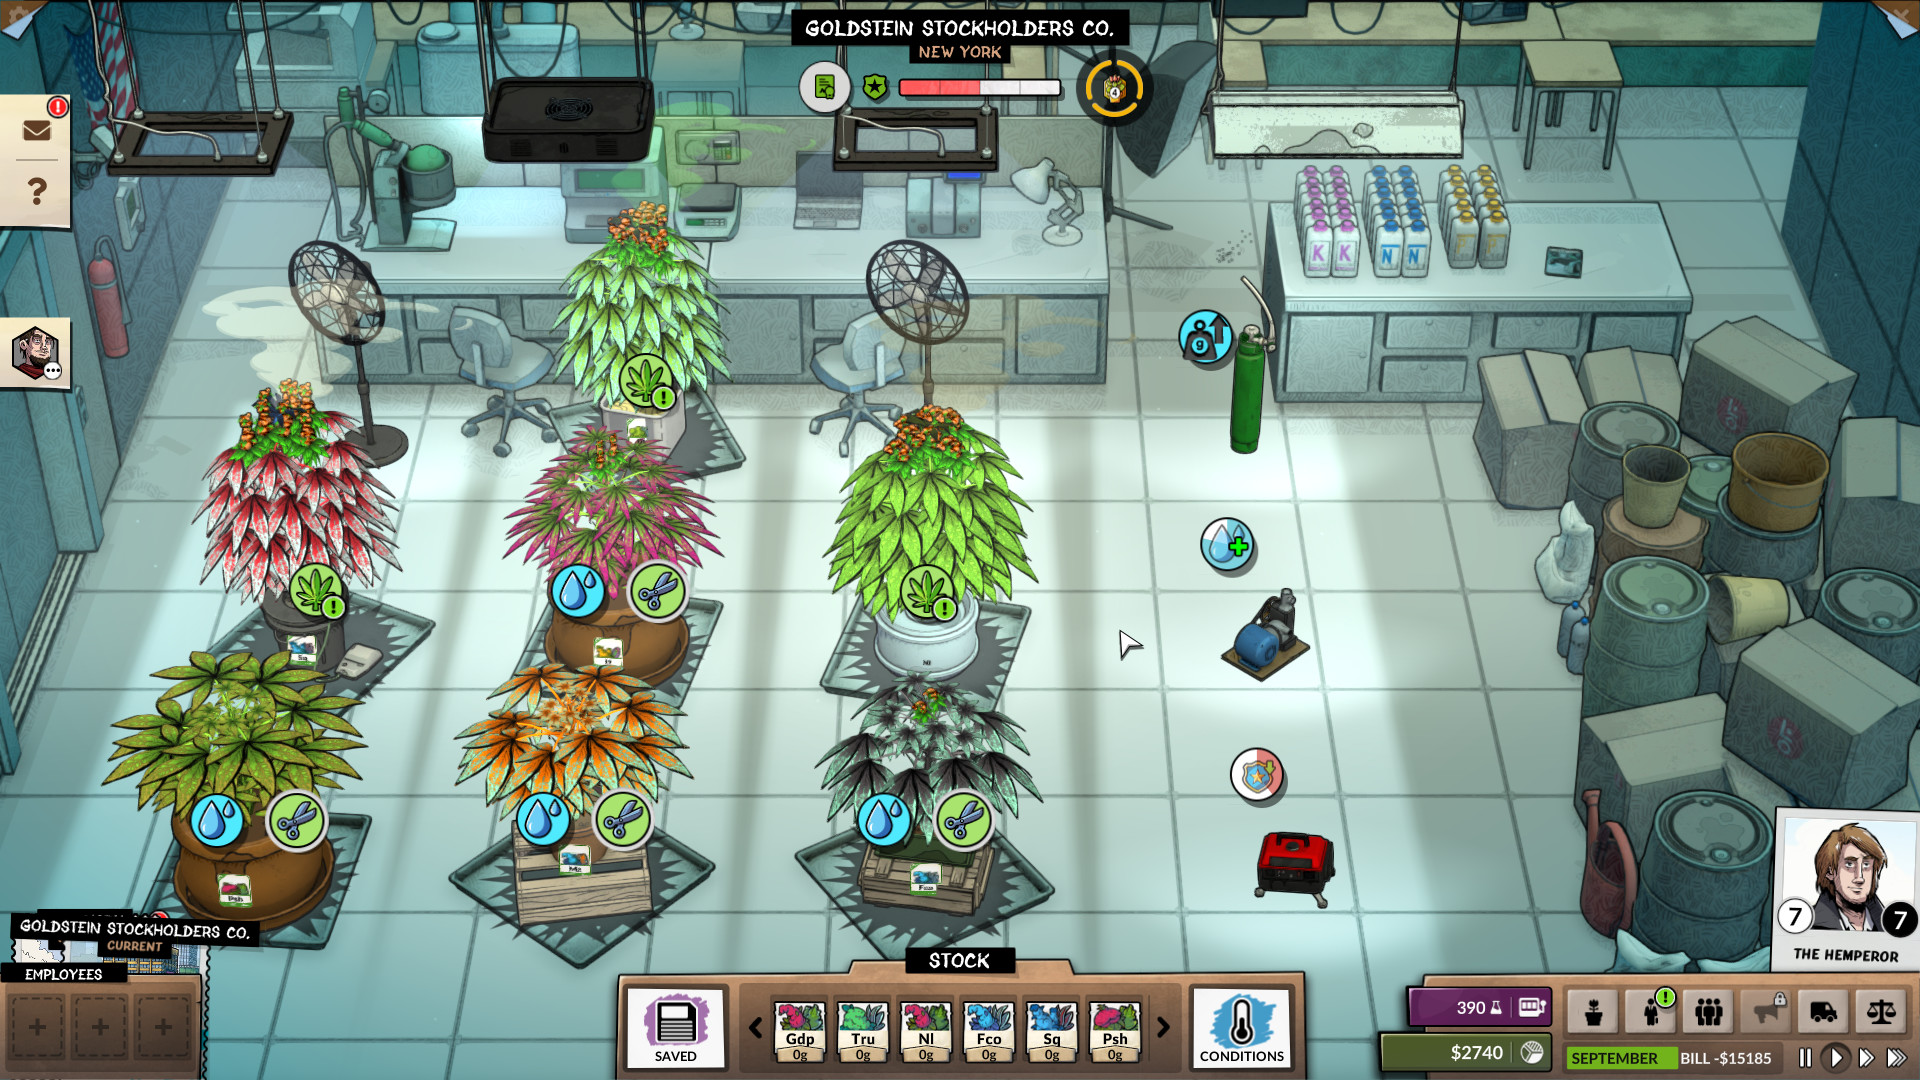 Chilly reception for marijuana tycoon game shows games industry's backwards stance on drugs